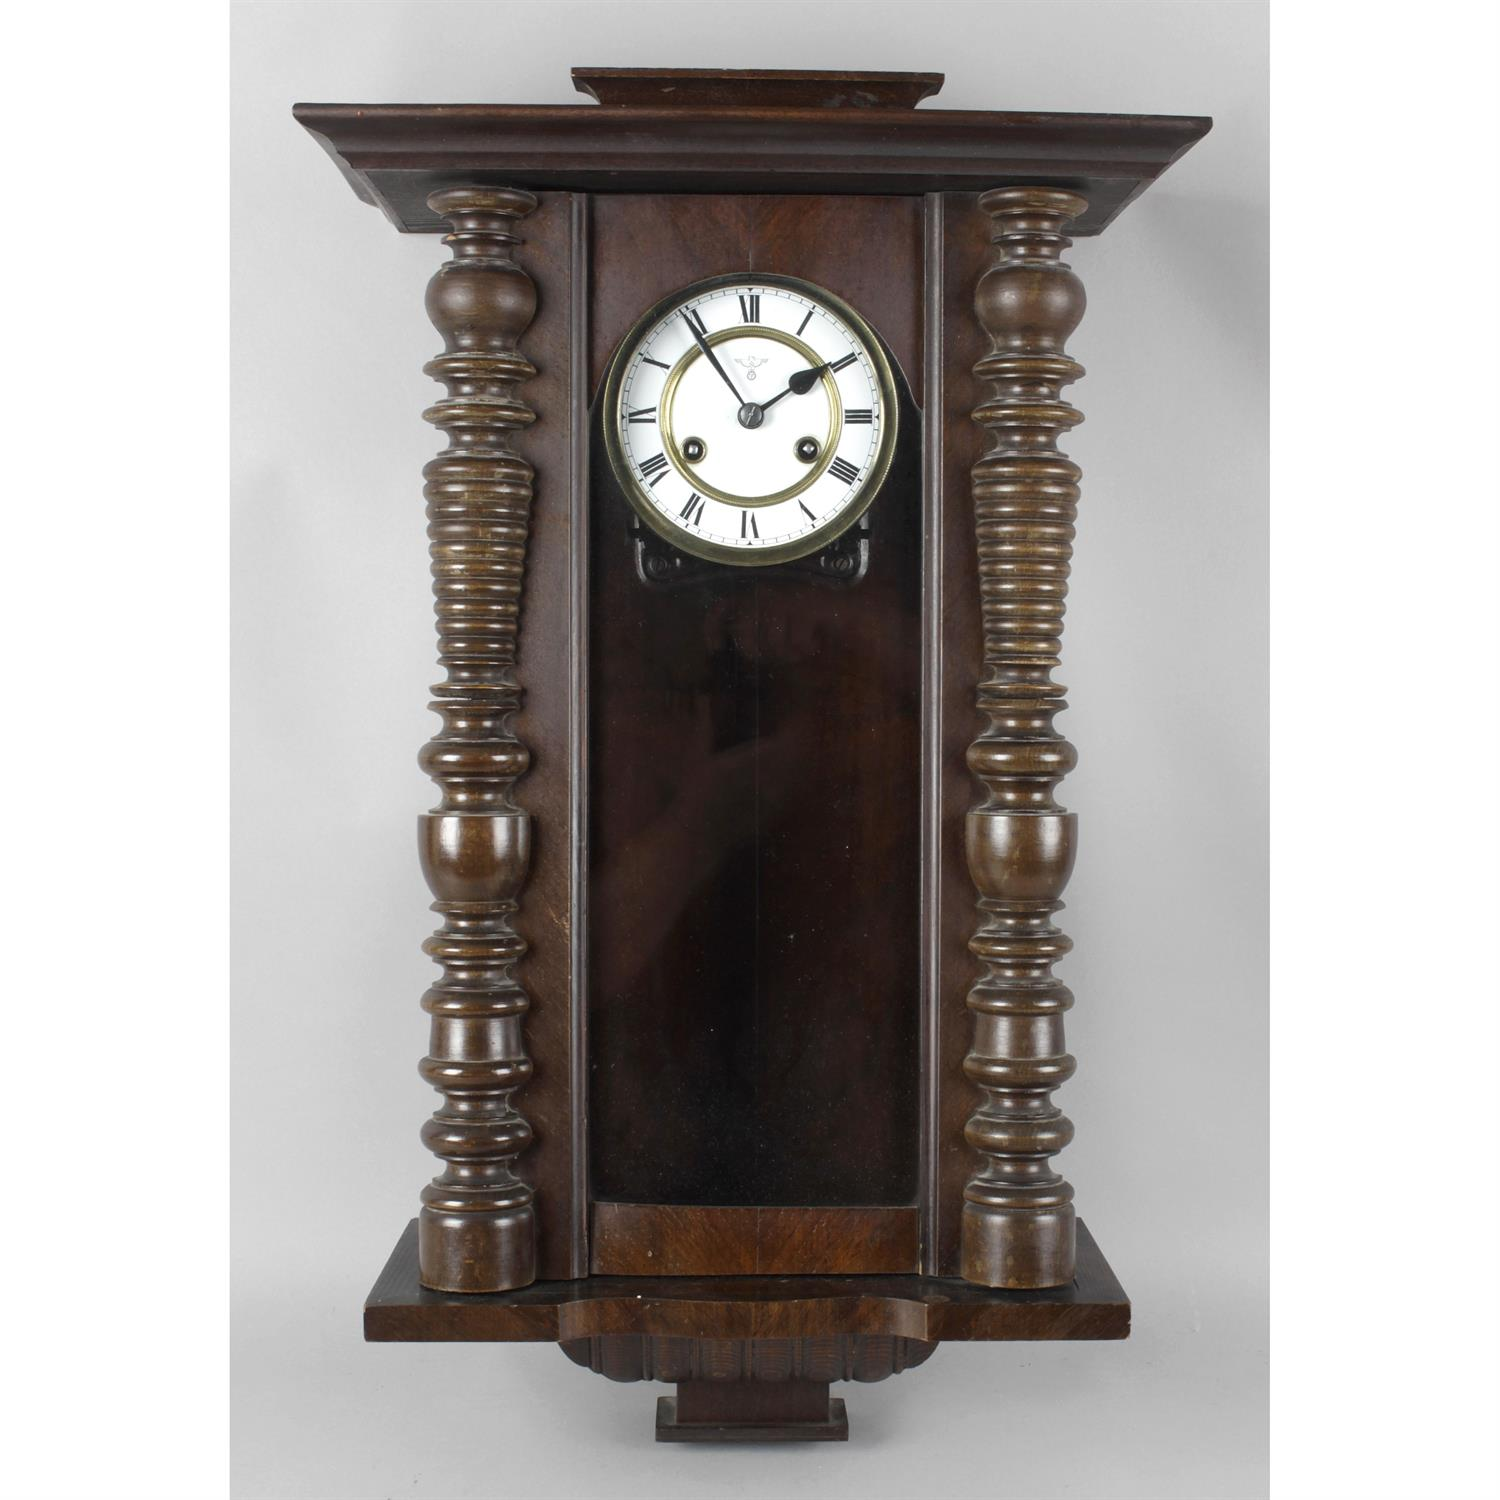 A stained wooden cased Vienna style wall clock